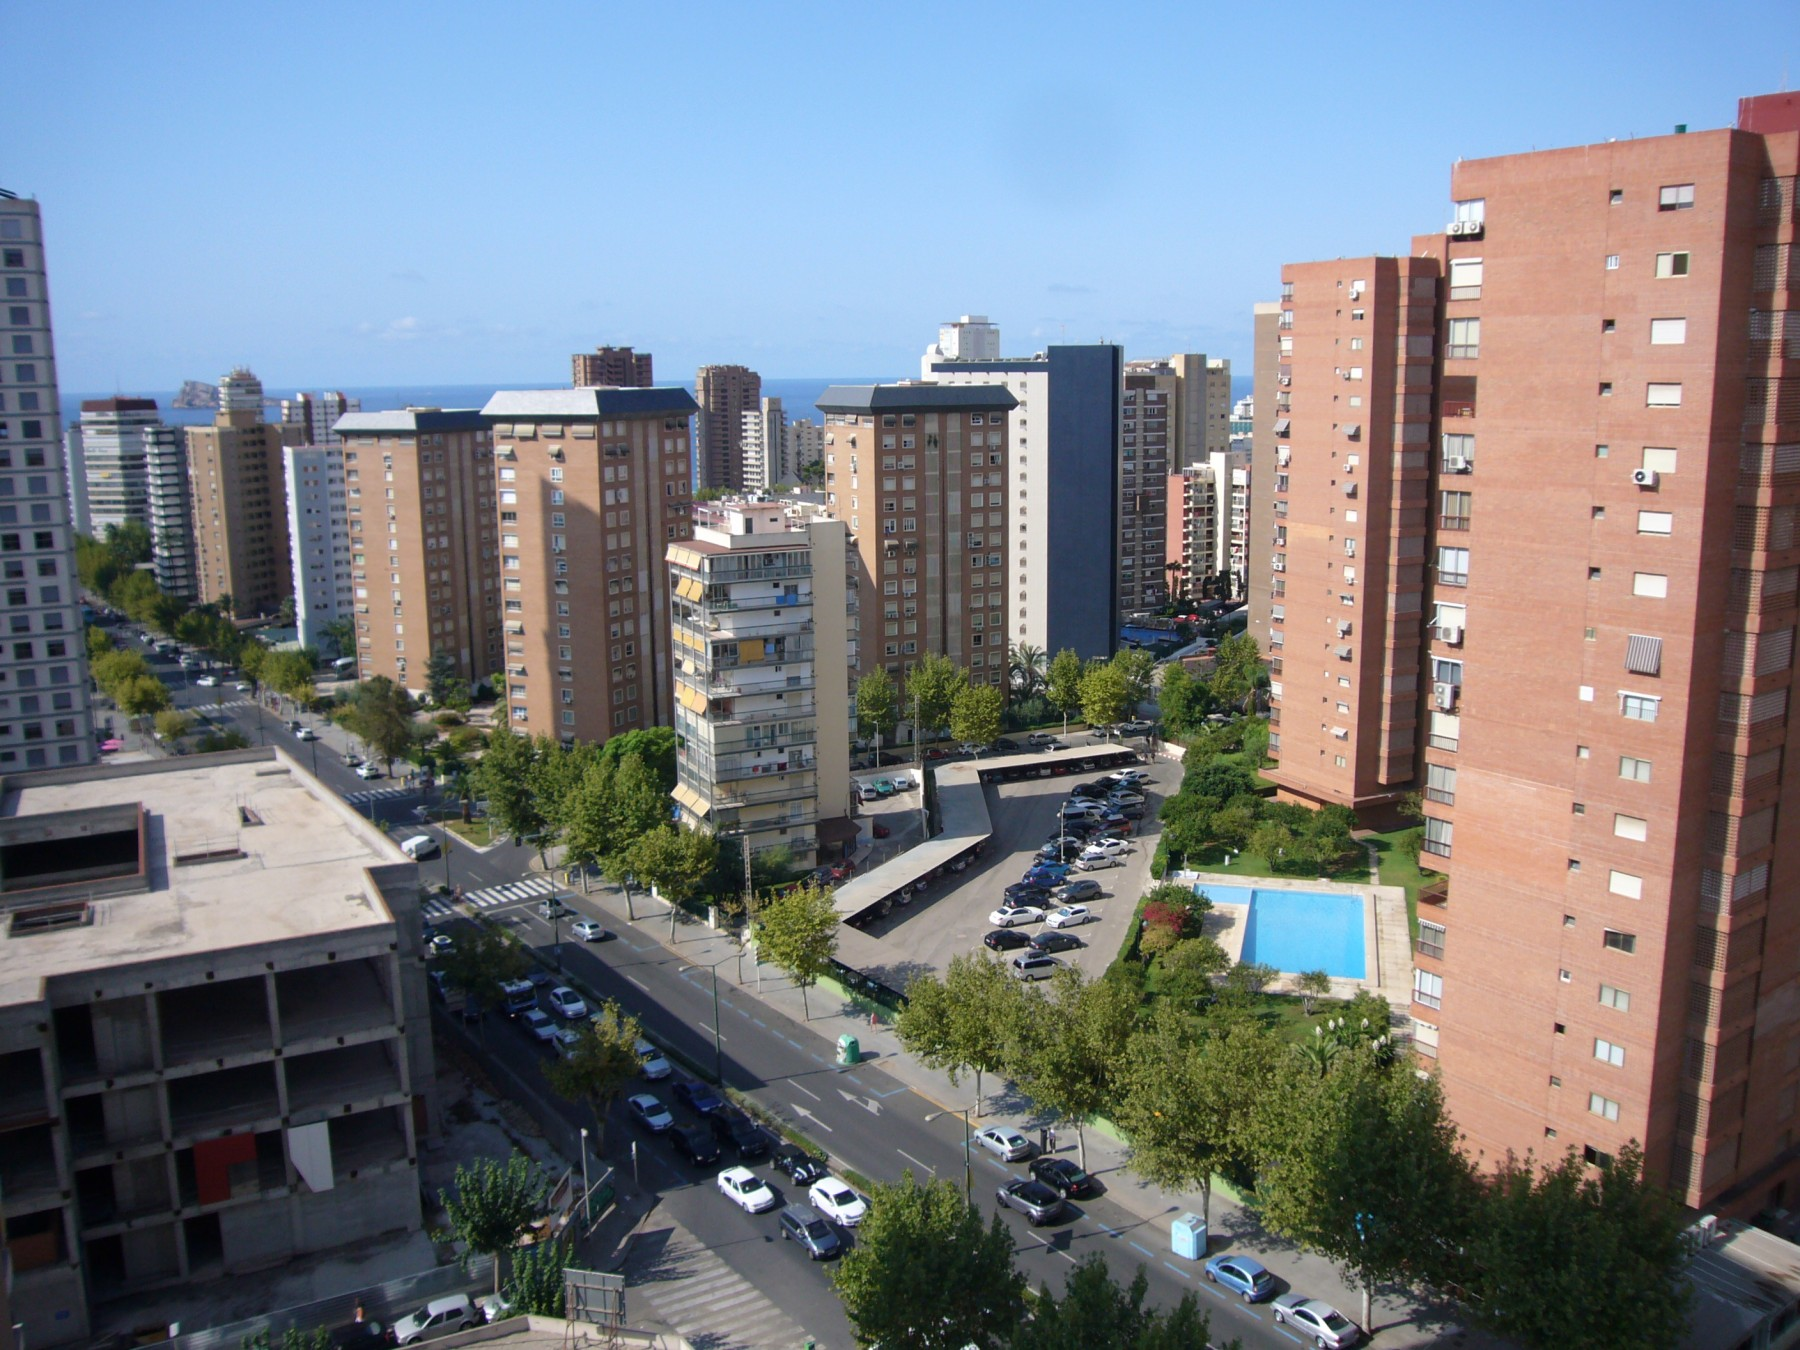 Rent apartments La Pinta in Benidorm